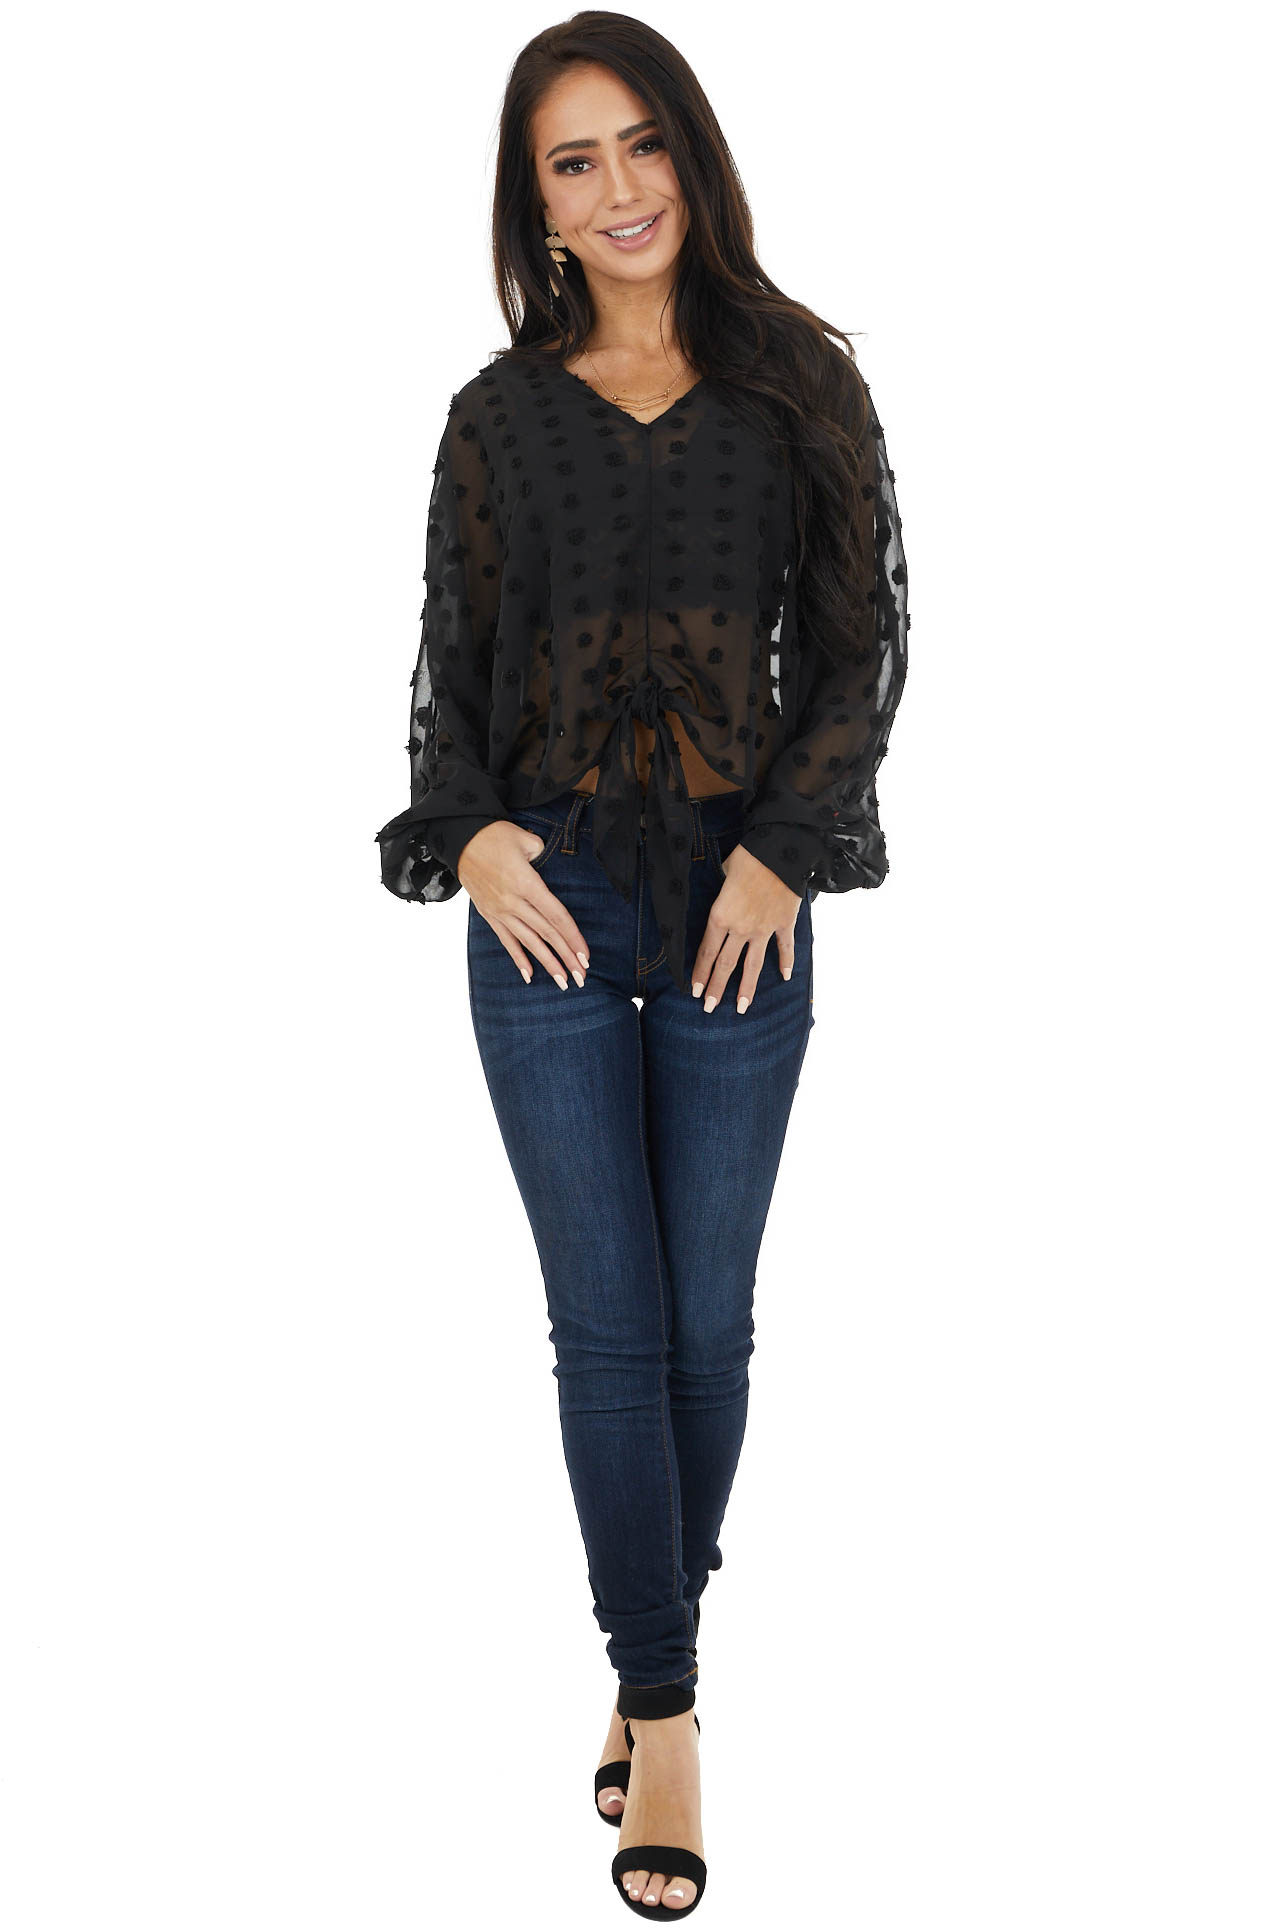 Black Swiss Dot Sheer Woven Top with Long Dolman Sleeves